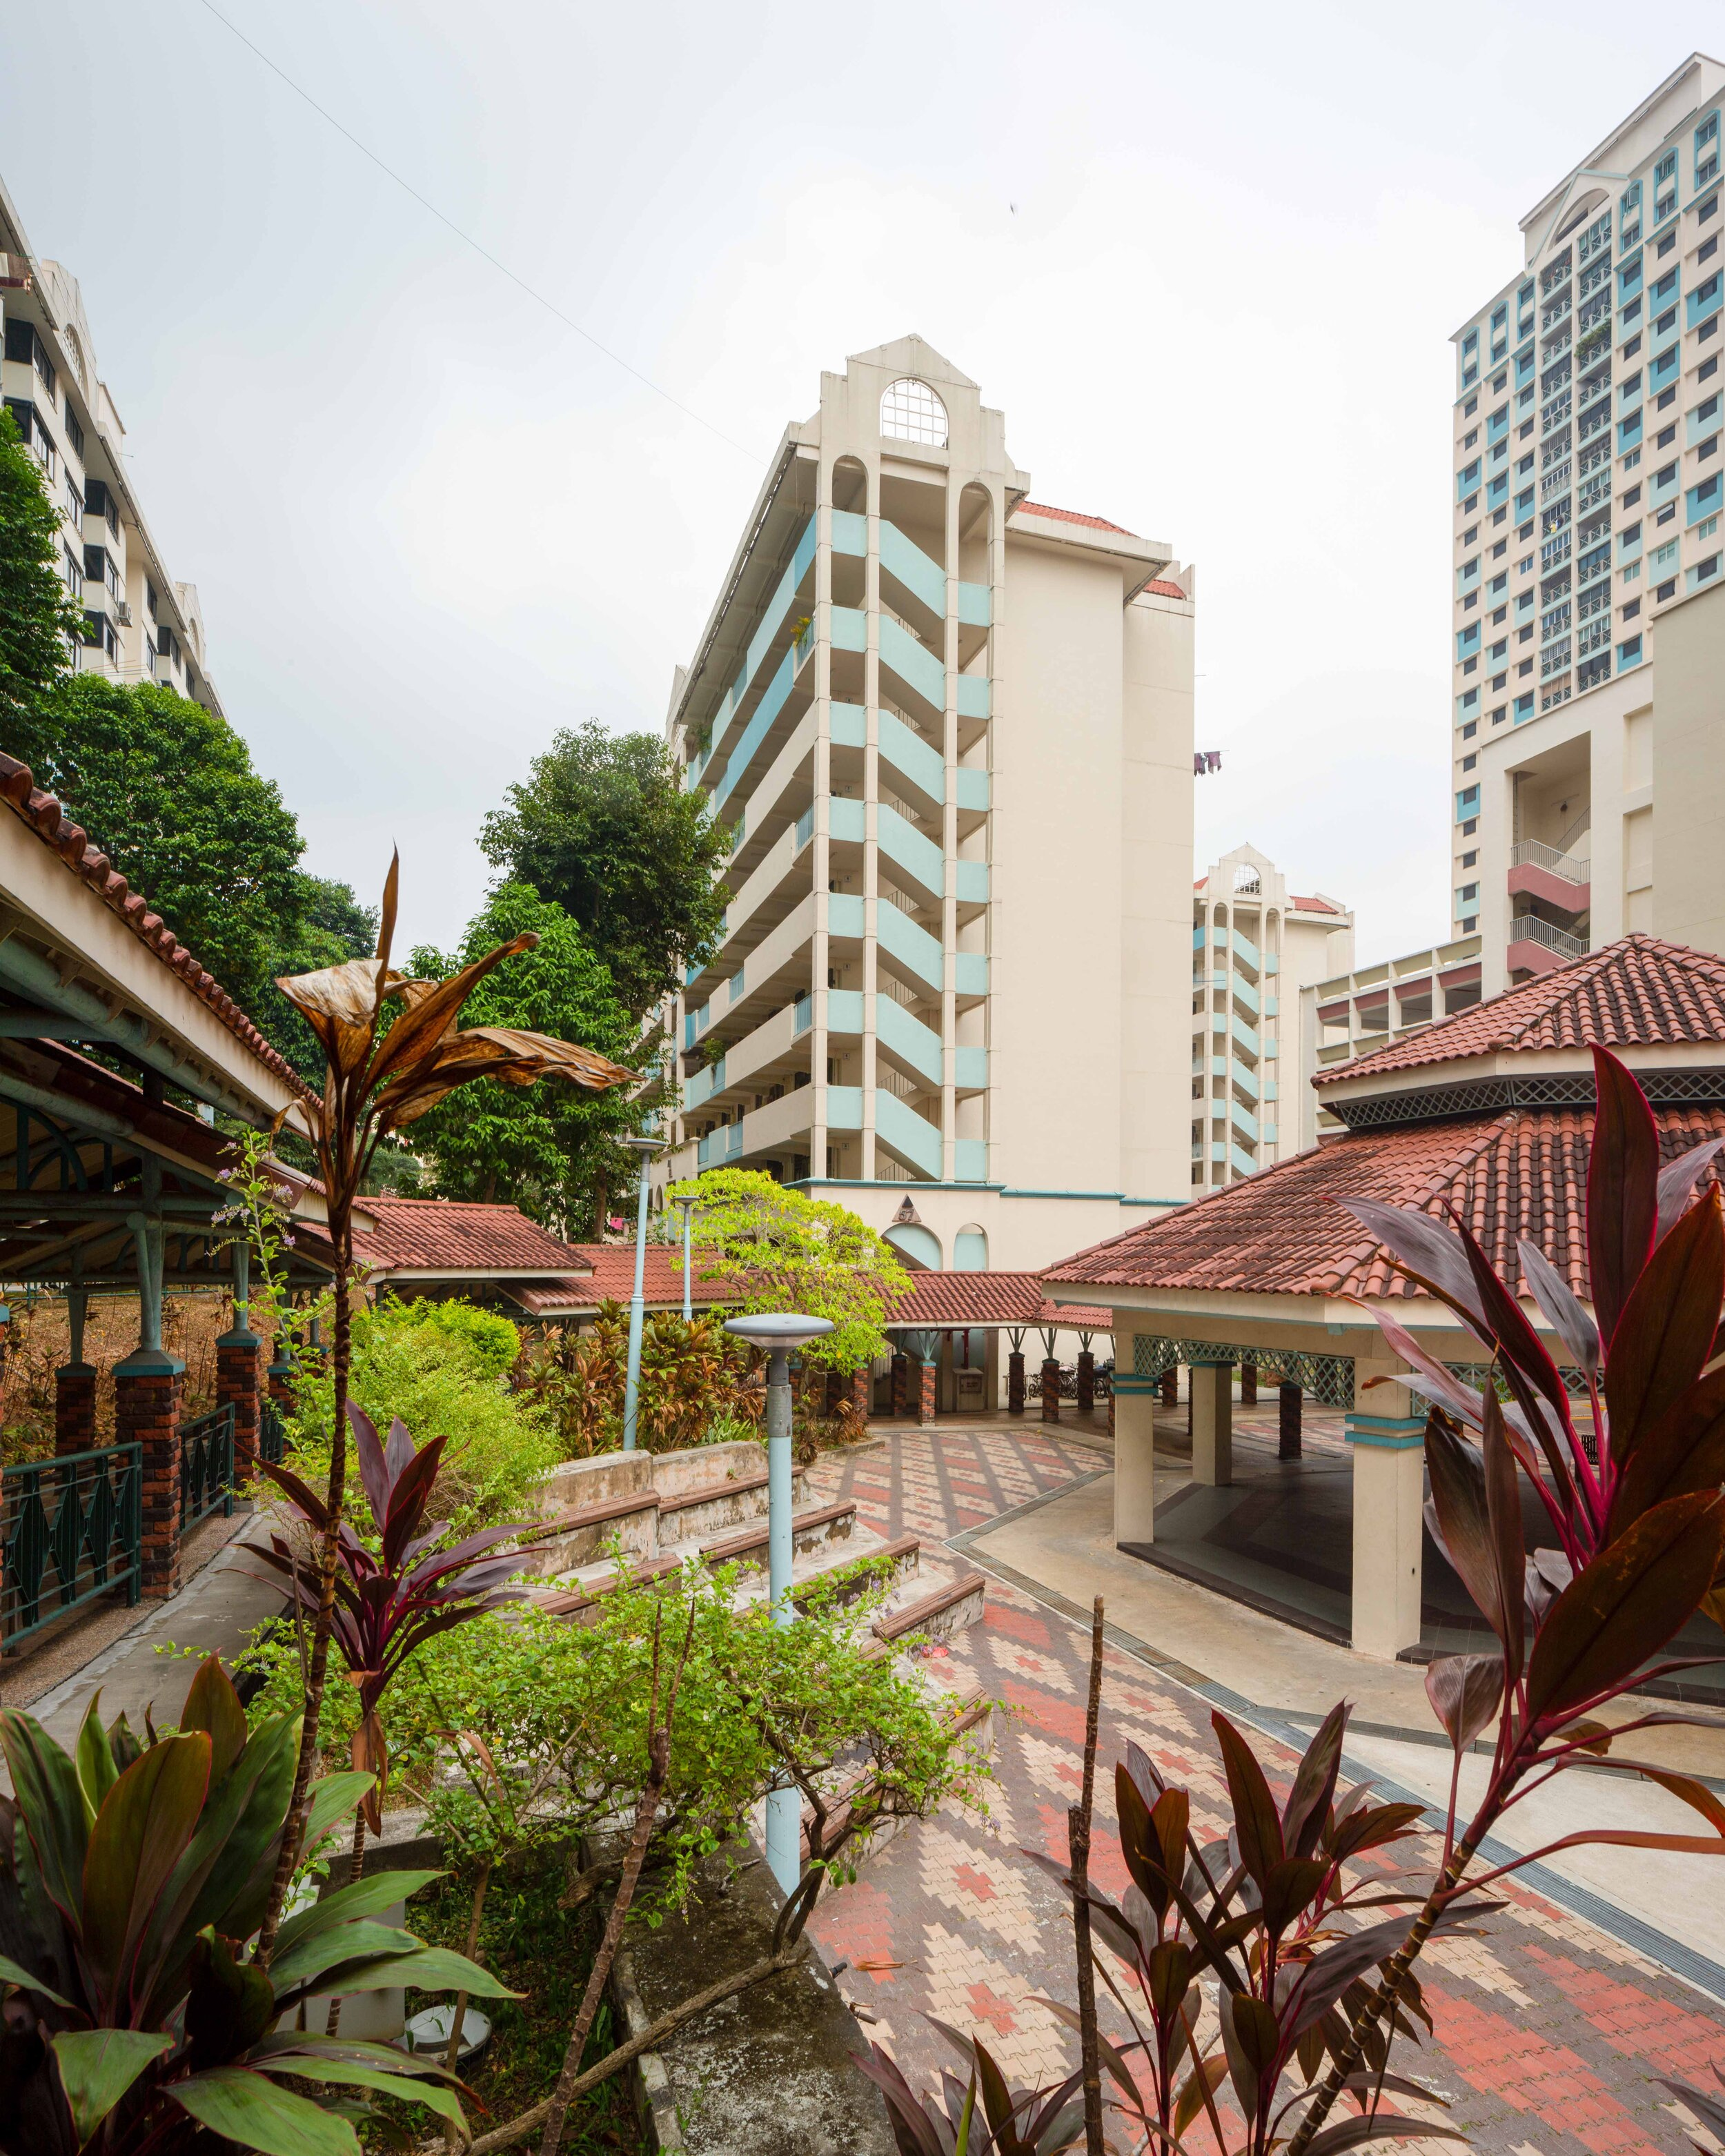 57 Lorong 5 Toa Payoh 190918 011, image by Andrew Campbell Nelson.jpg